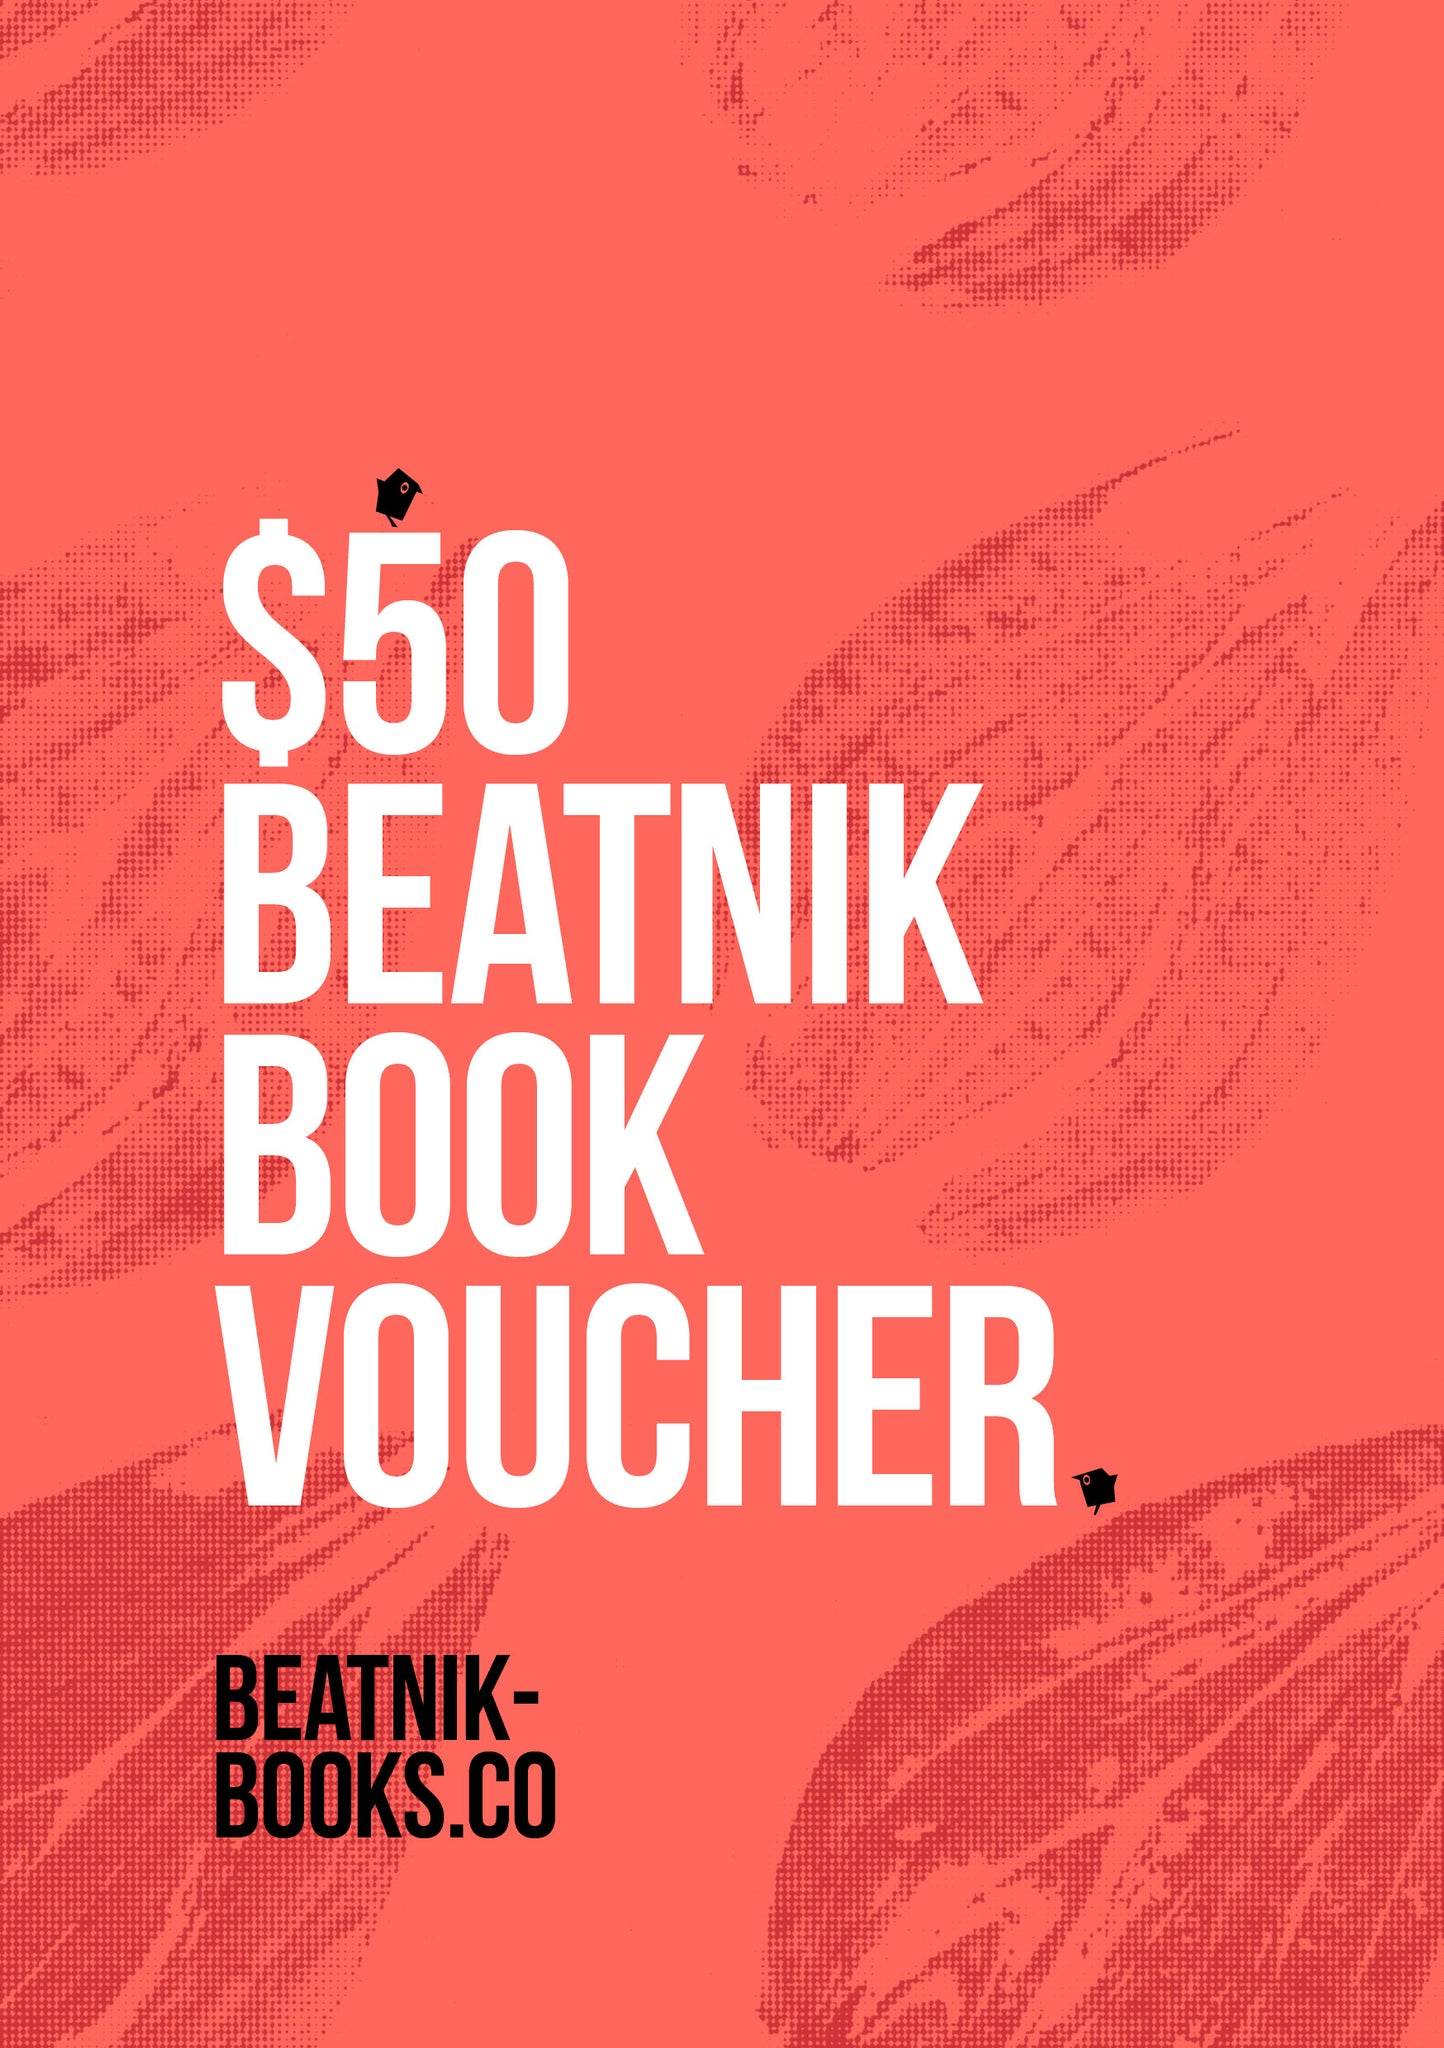 Beatnik Book Voucher